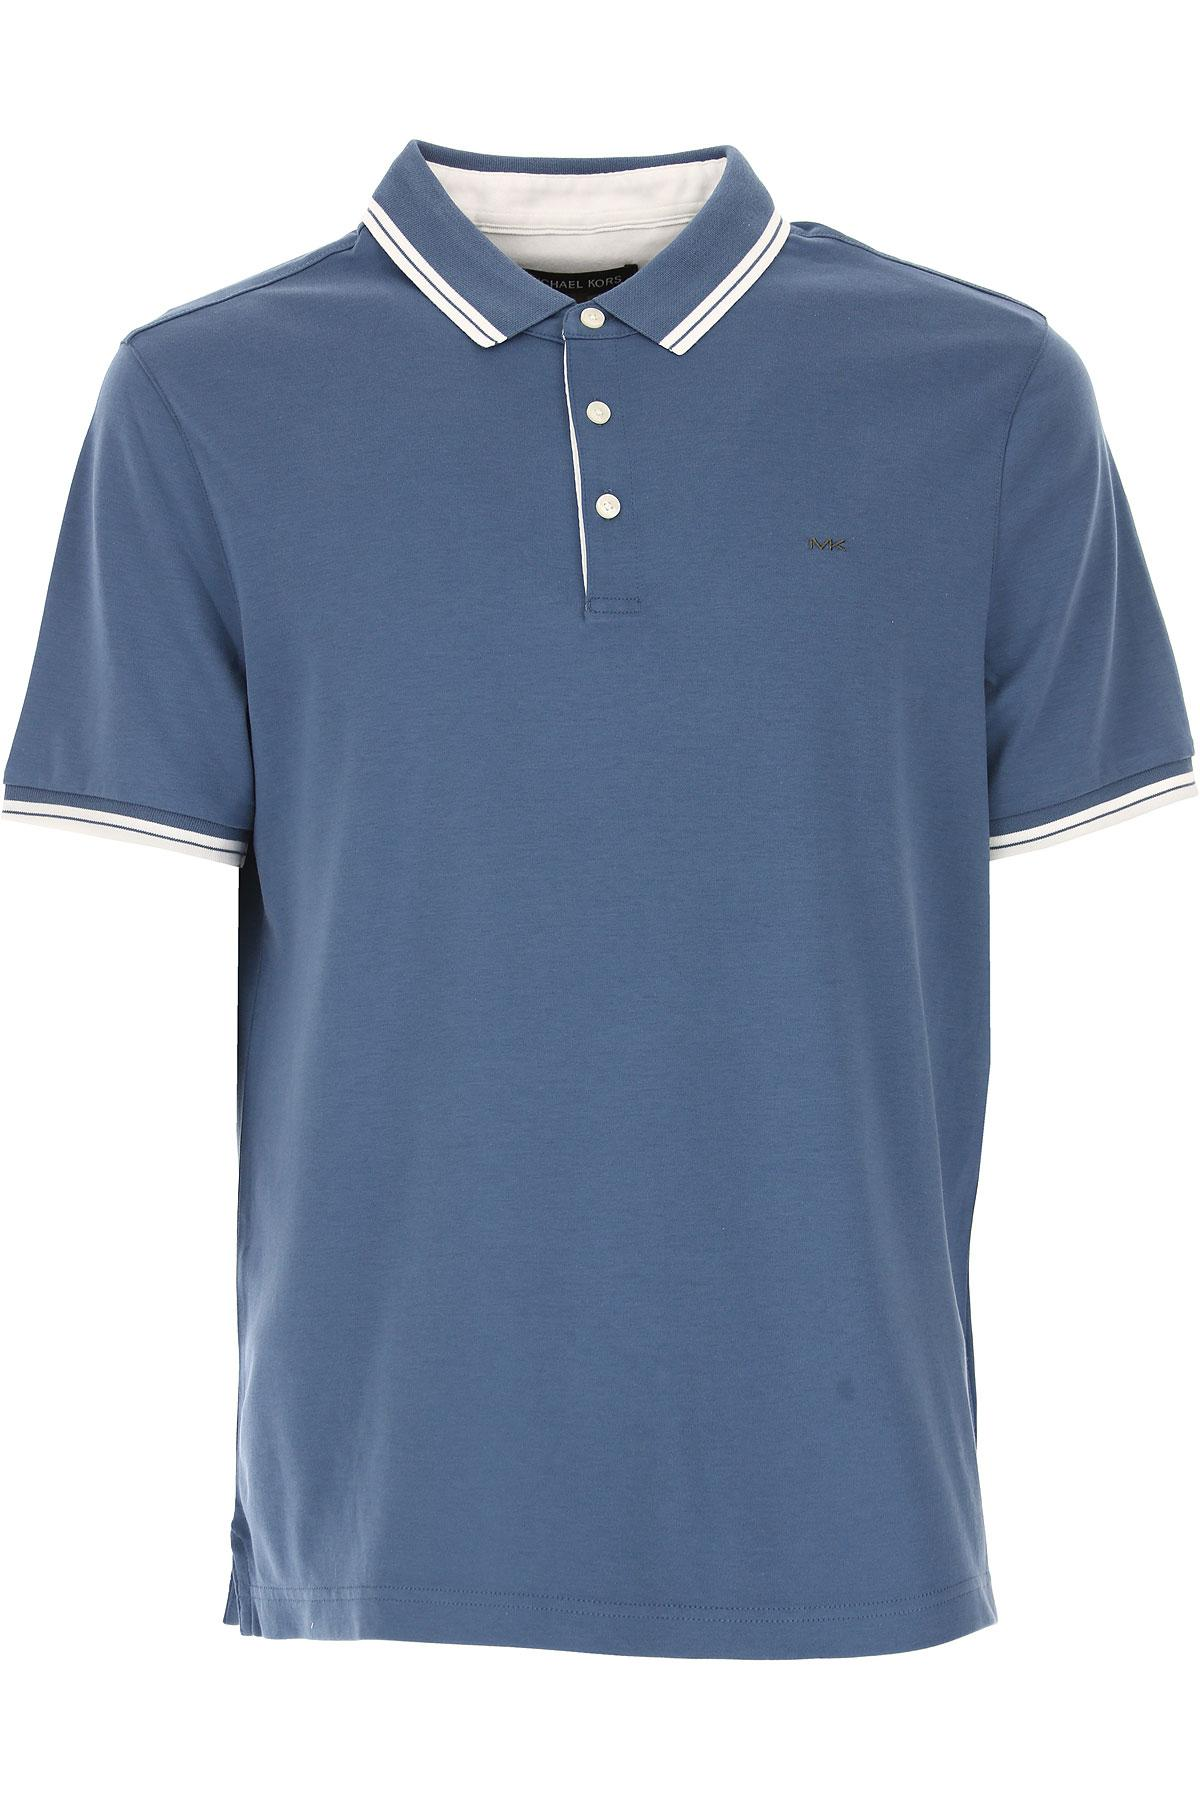 Lyst Michael Kors Polo Shirt For Men On Sale In Outlet In Blue For